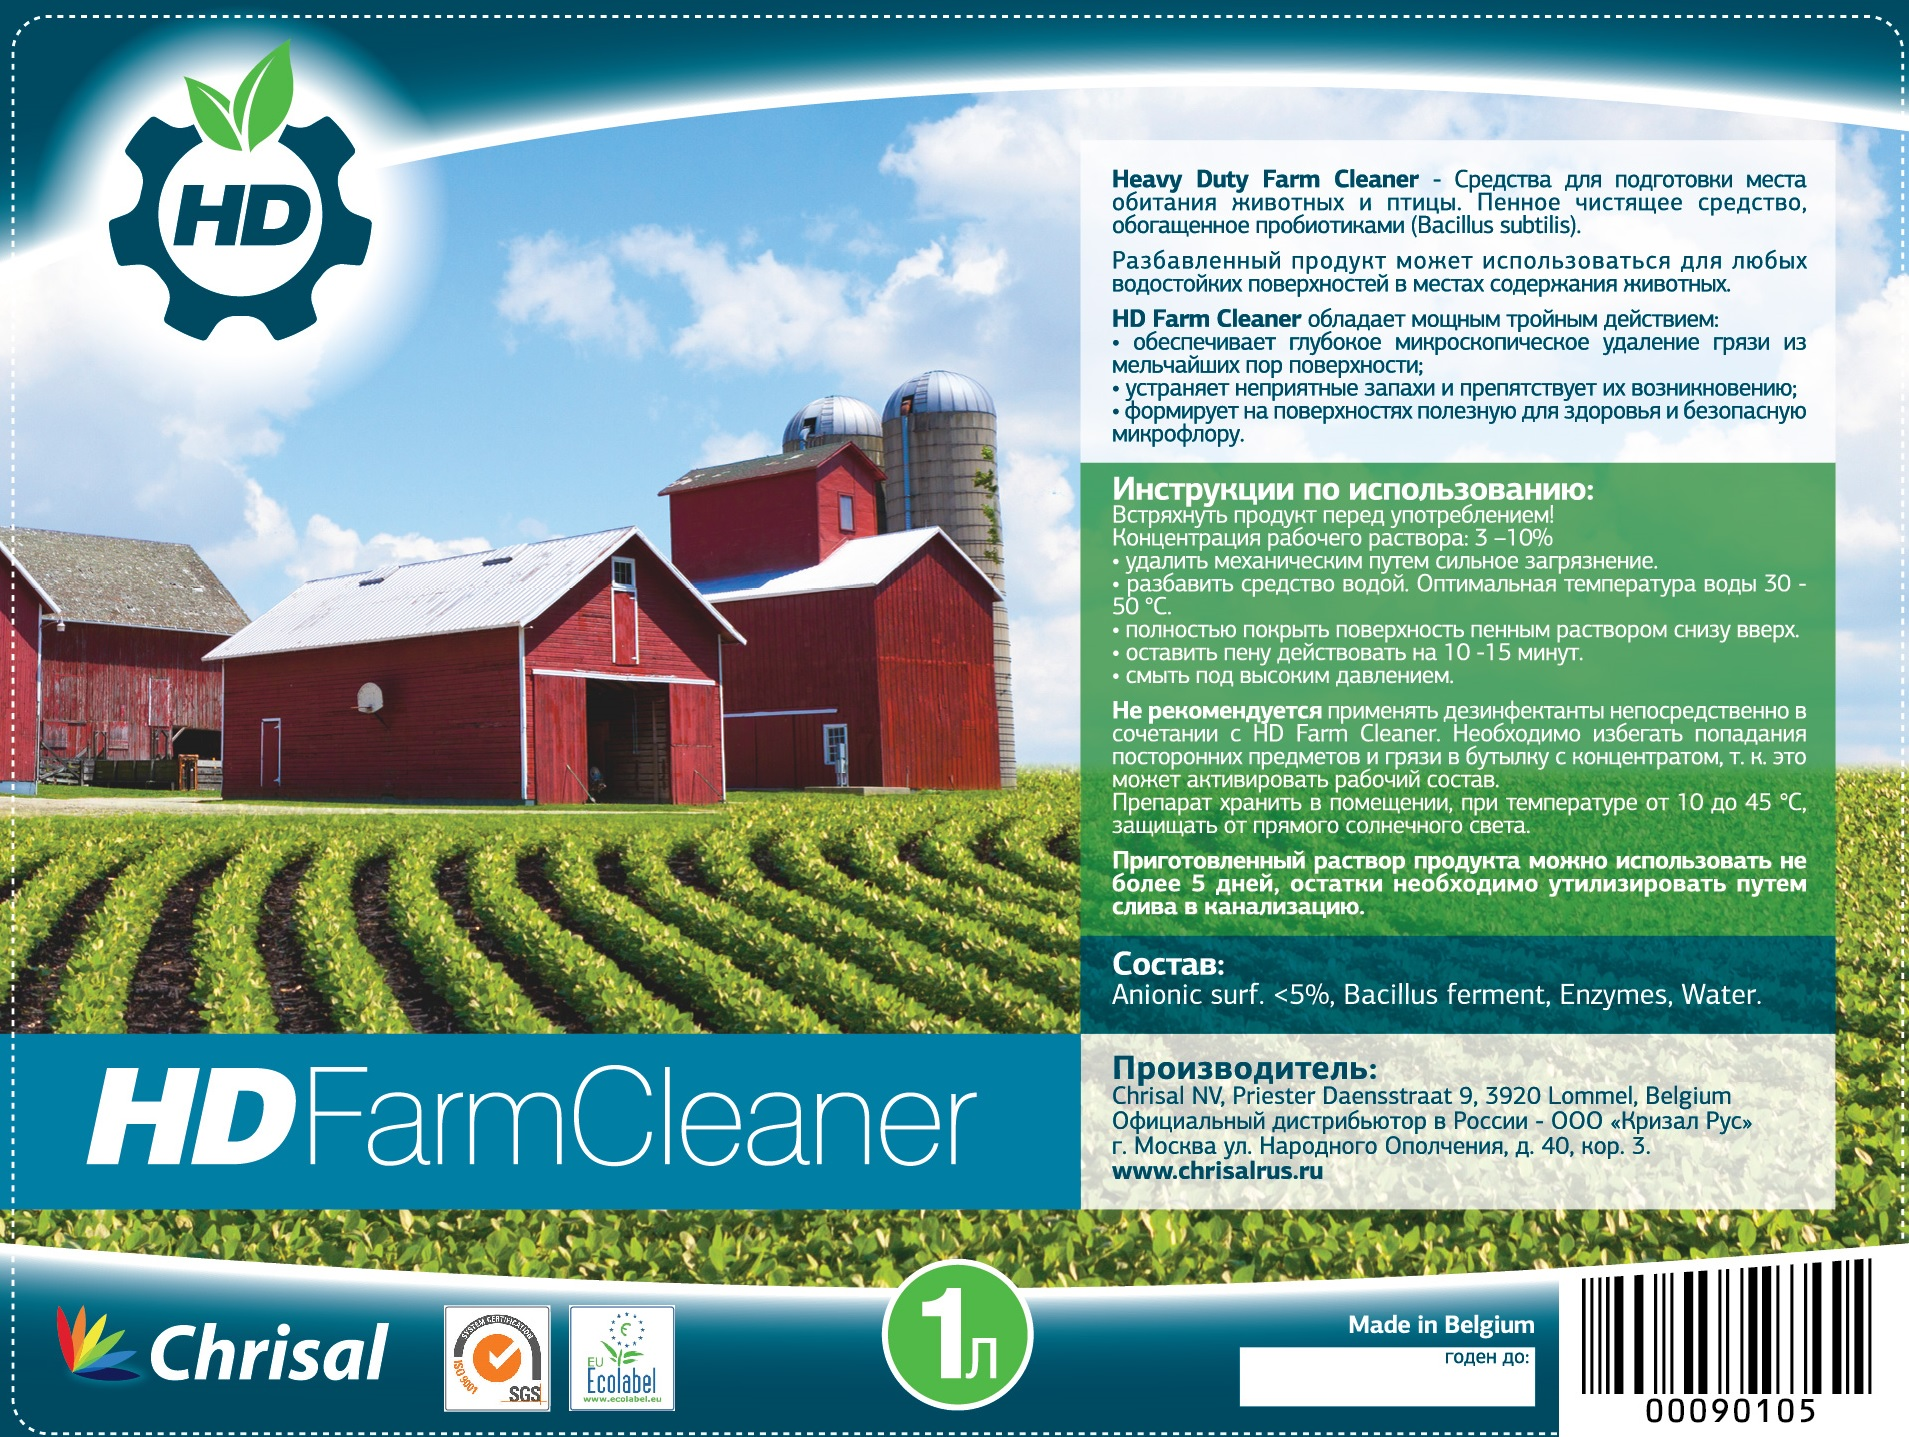 HD Farm Cleaner